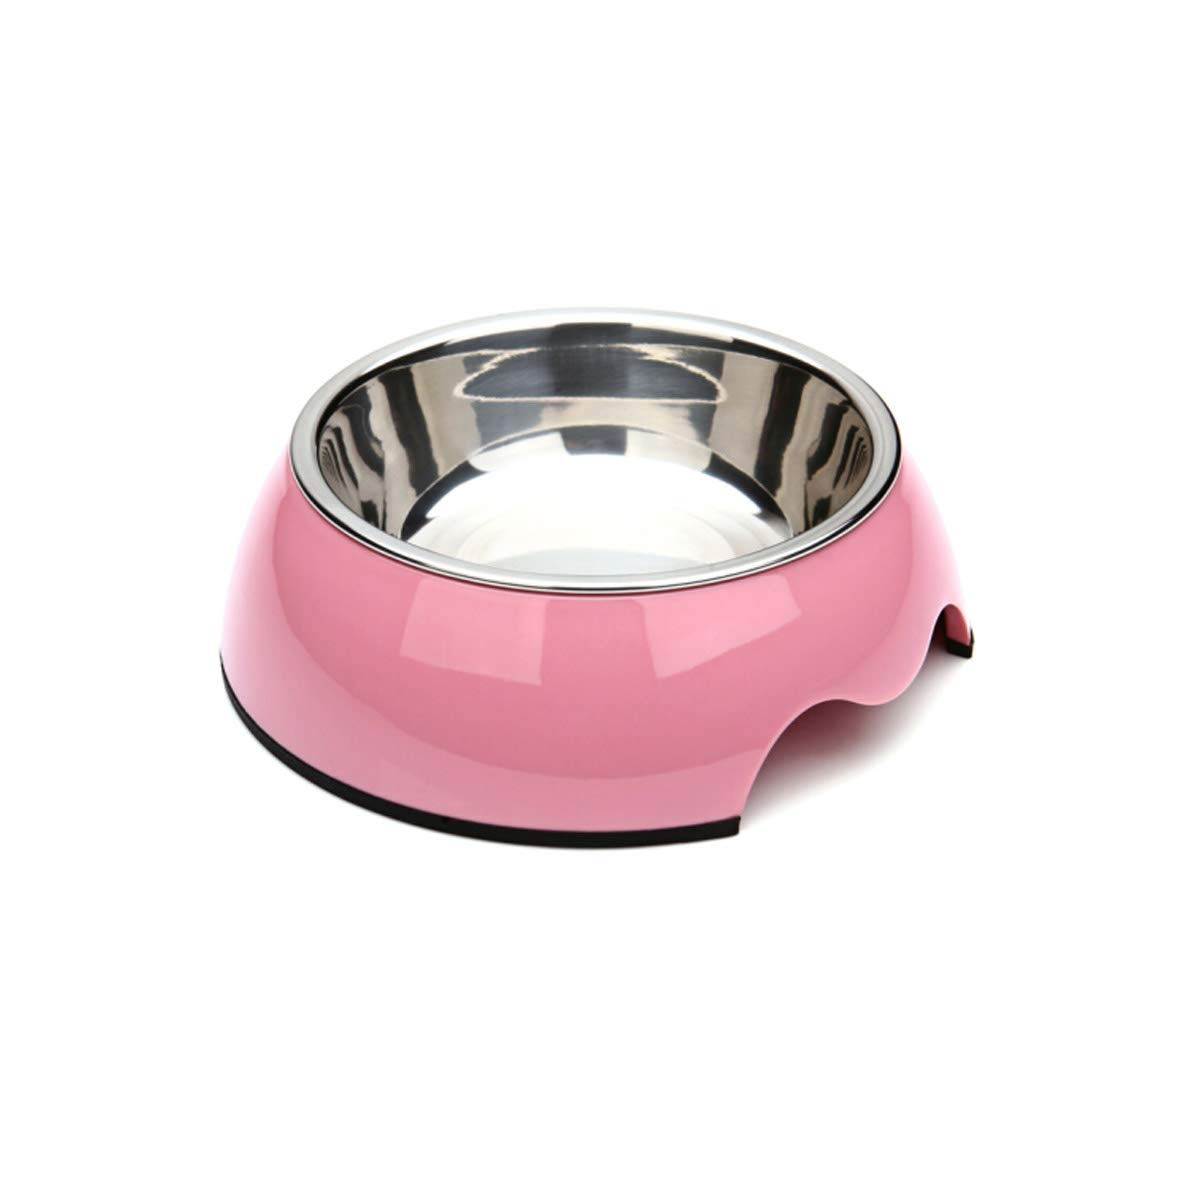 Guyuexuan Cat Bowl, Cat Food Bowl, Dog Food Bowl, Pet Supplies, Ceramic Bowl, Cat Feeder, Dog Food Bowl, Best Gift (color   Pink, Size   Medium)